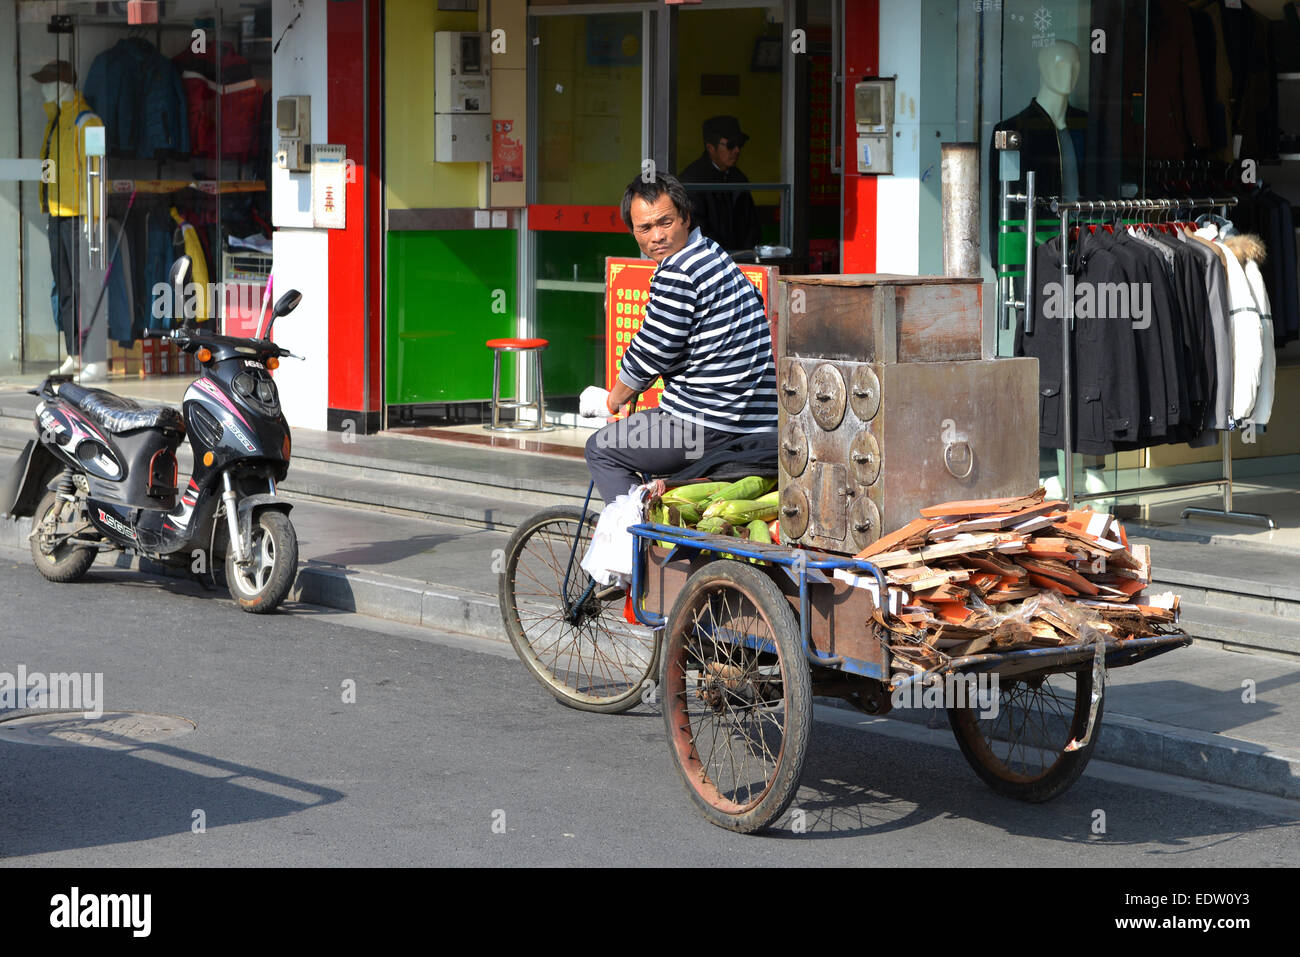 A man rides a portable roaster which allows him to sell roasted corn in Qingpu District of Shanghai. - Stock Image